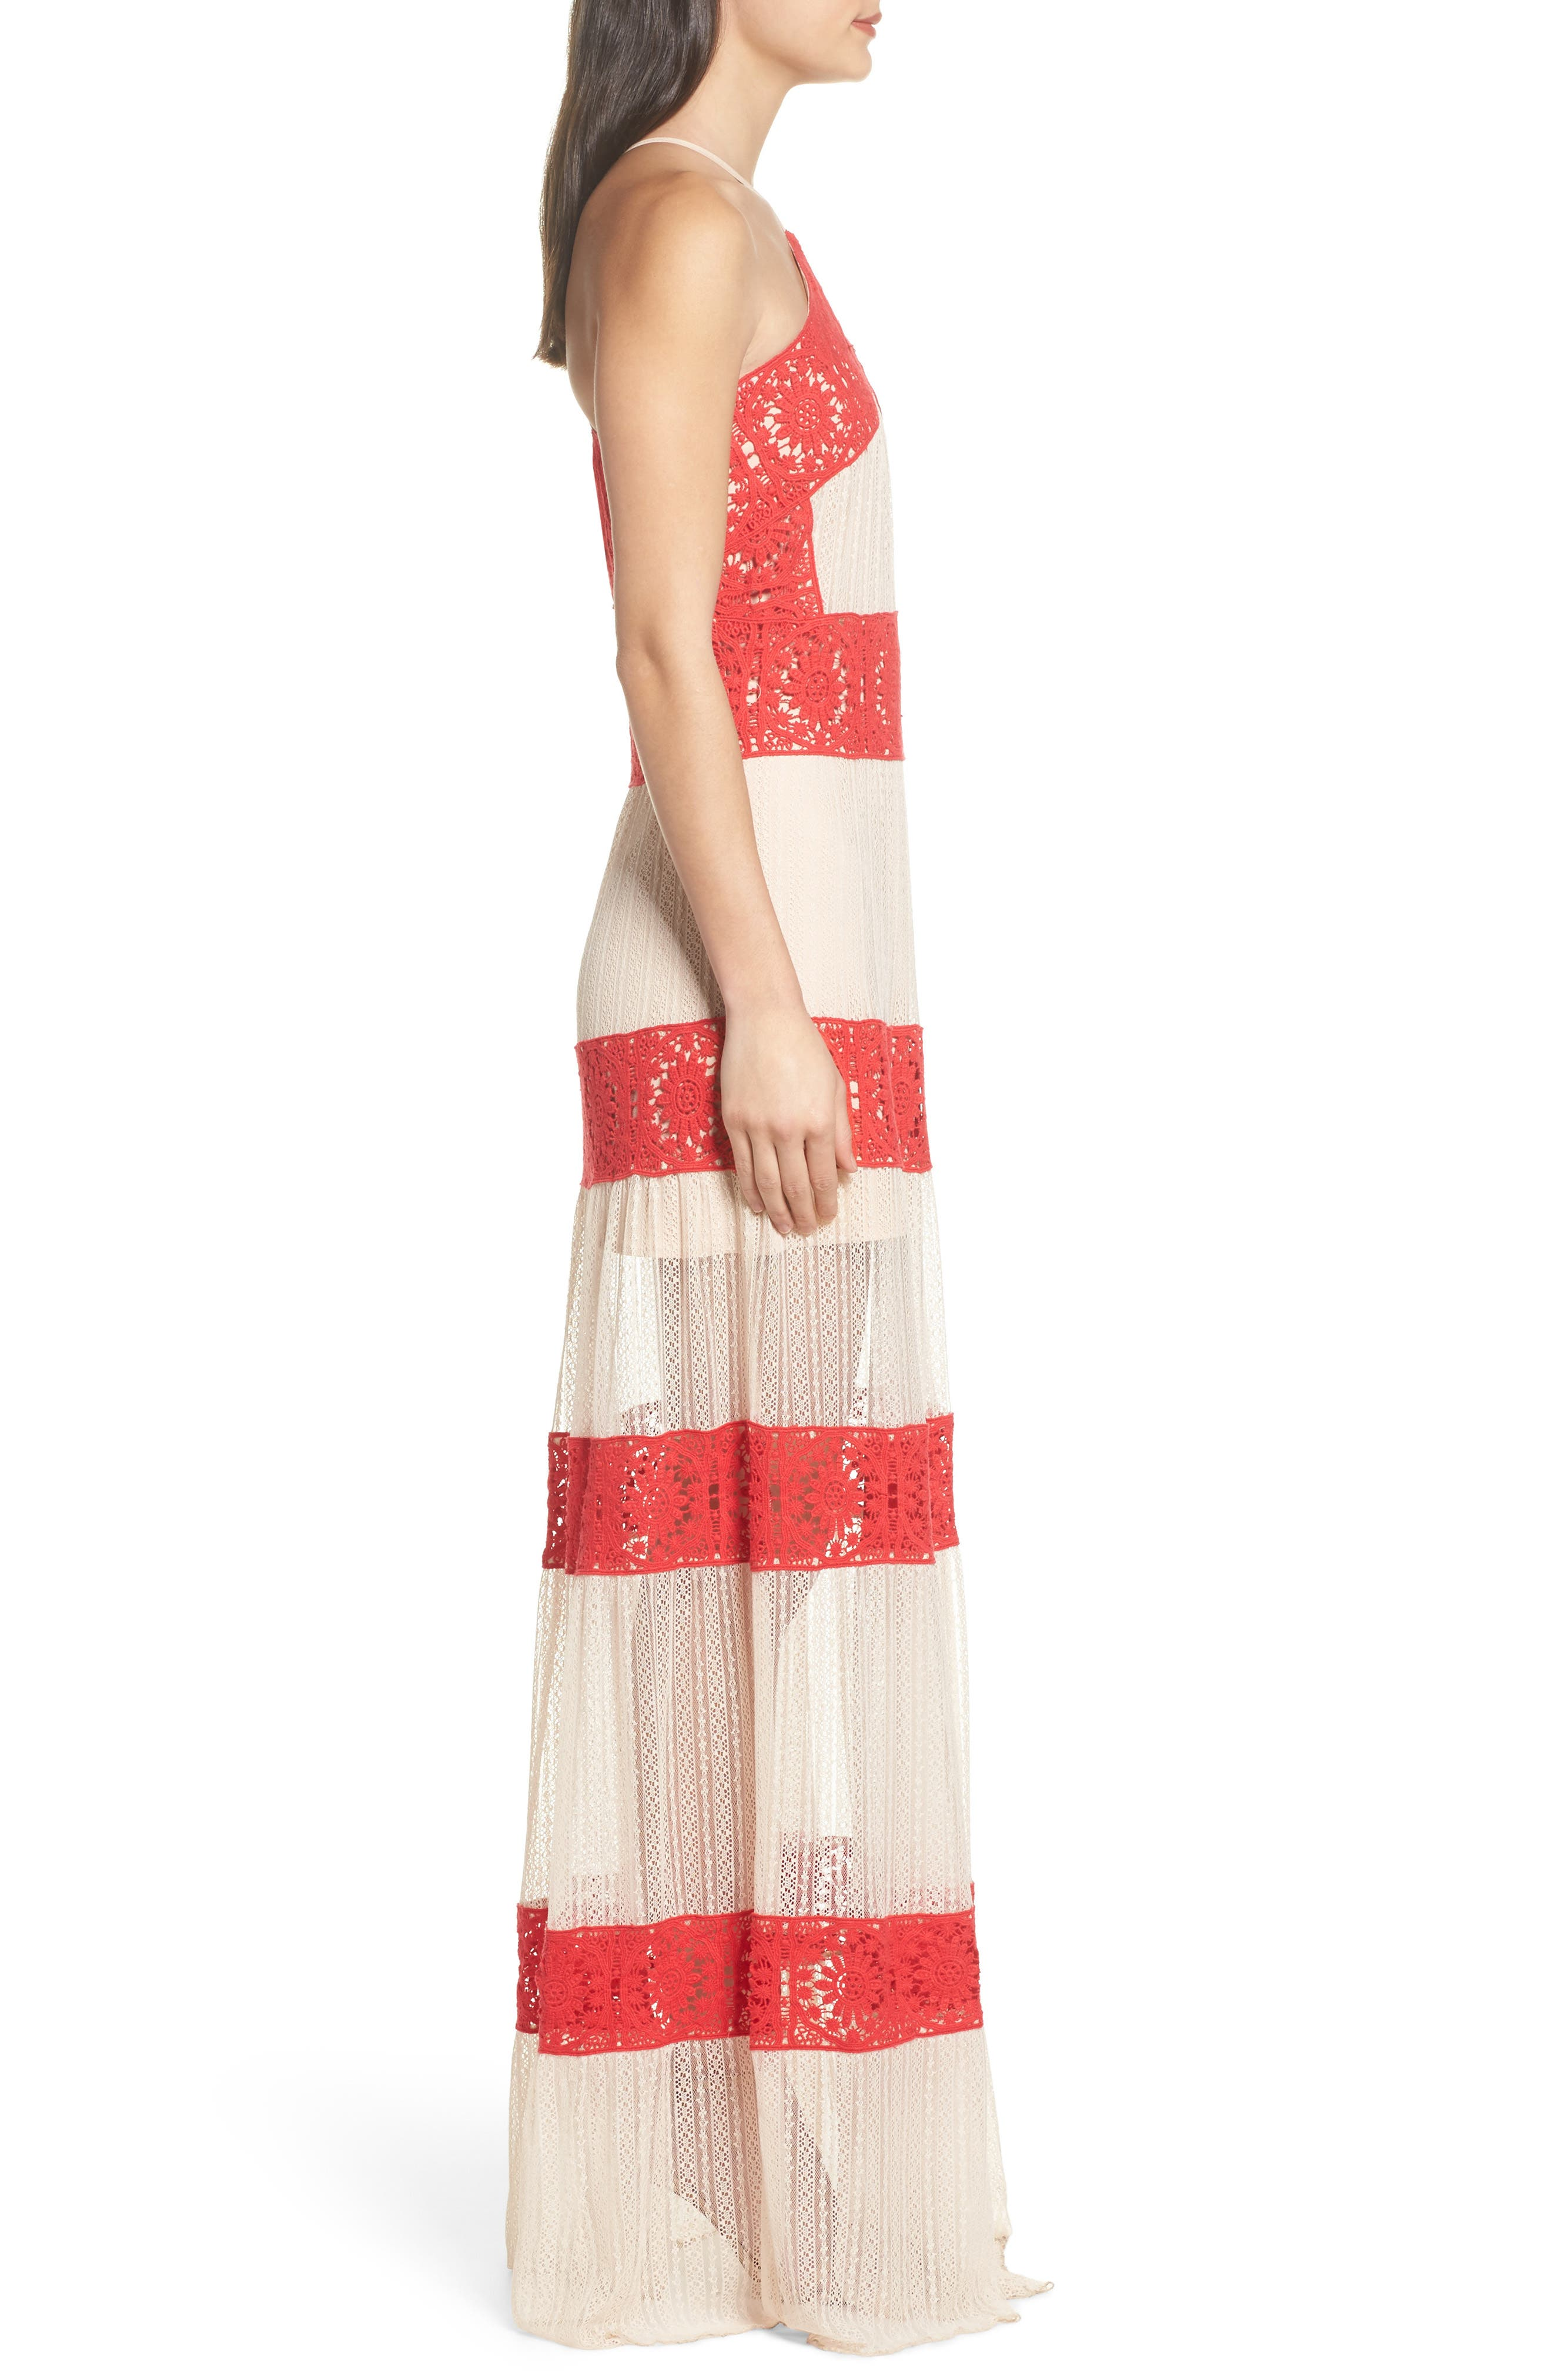 Ophelia Two-Tone Lace Maxi Dress,                             Alternate thumbnail 3, color,                             Red/ Nude